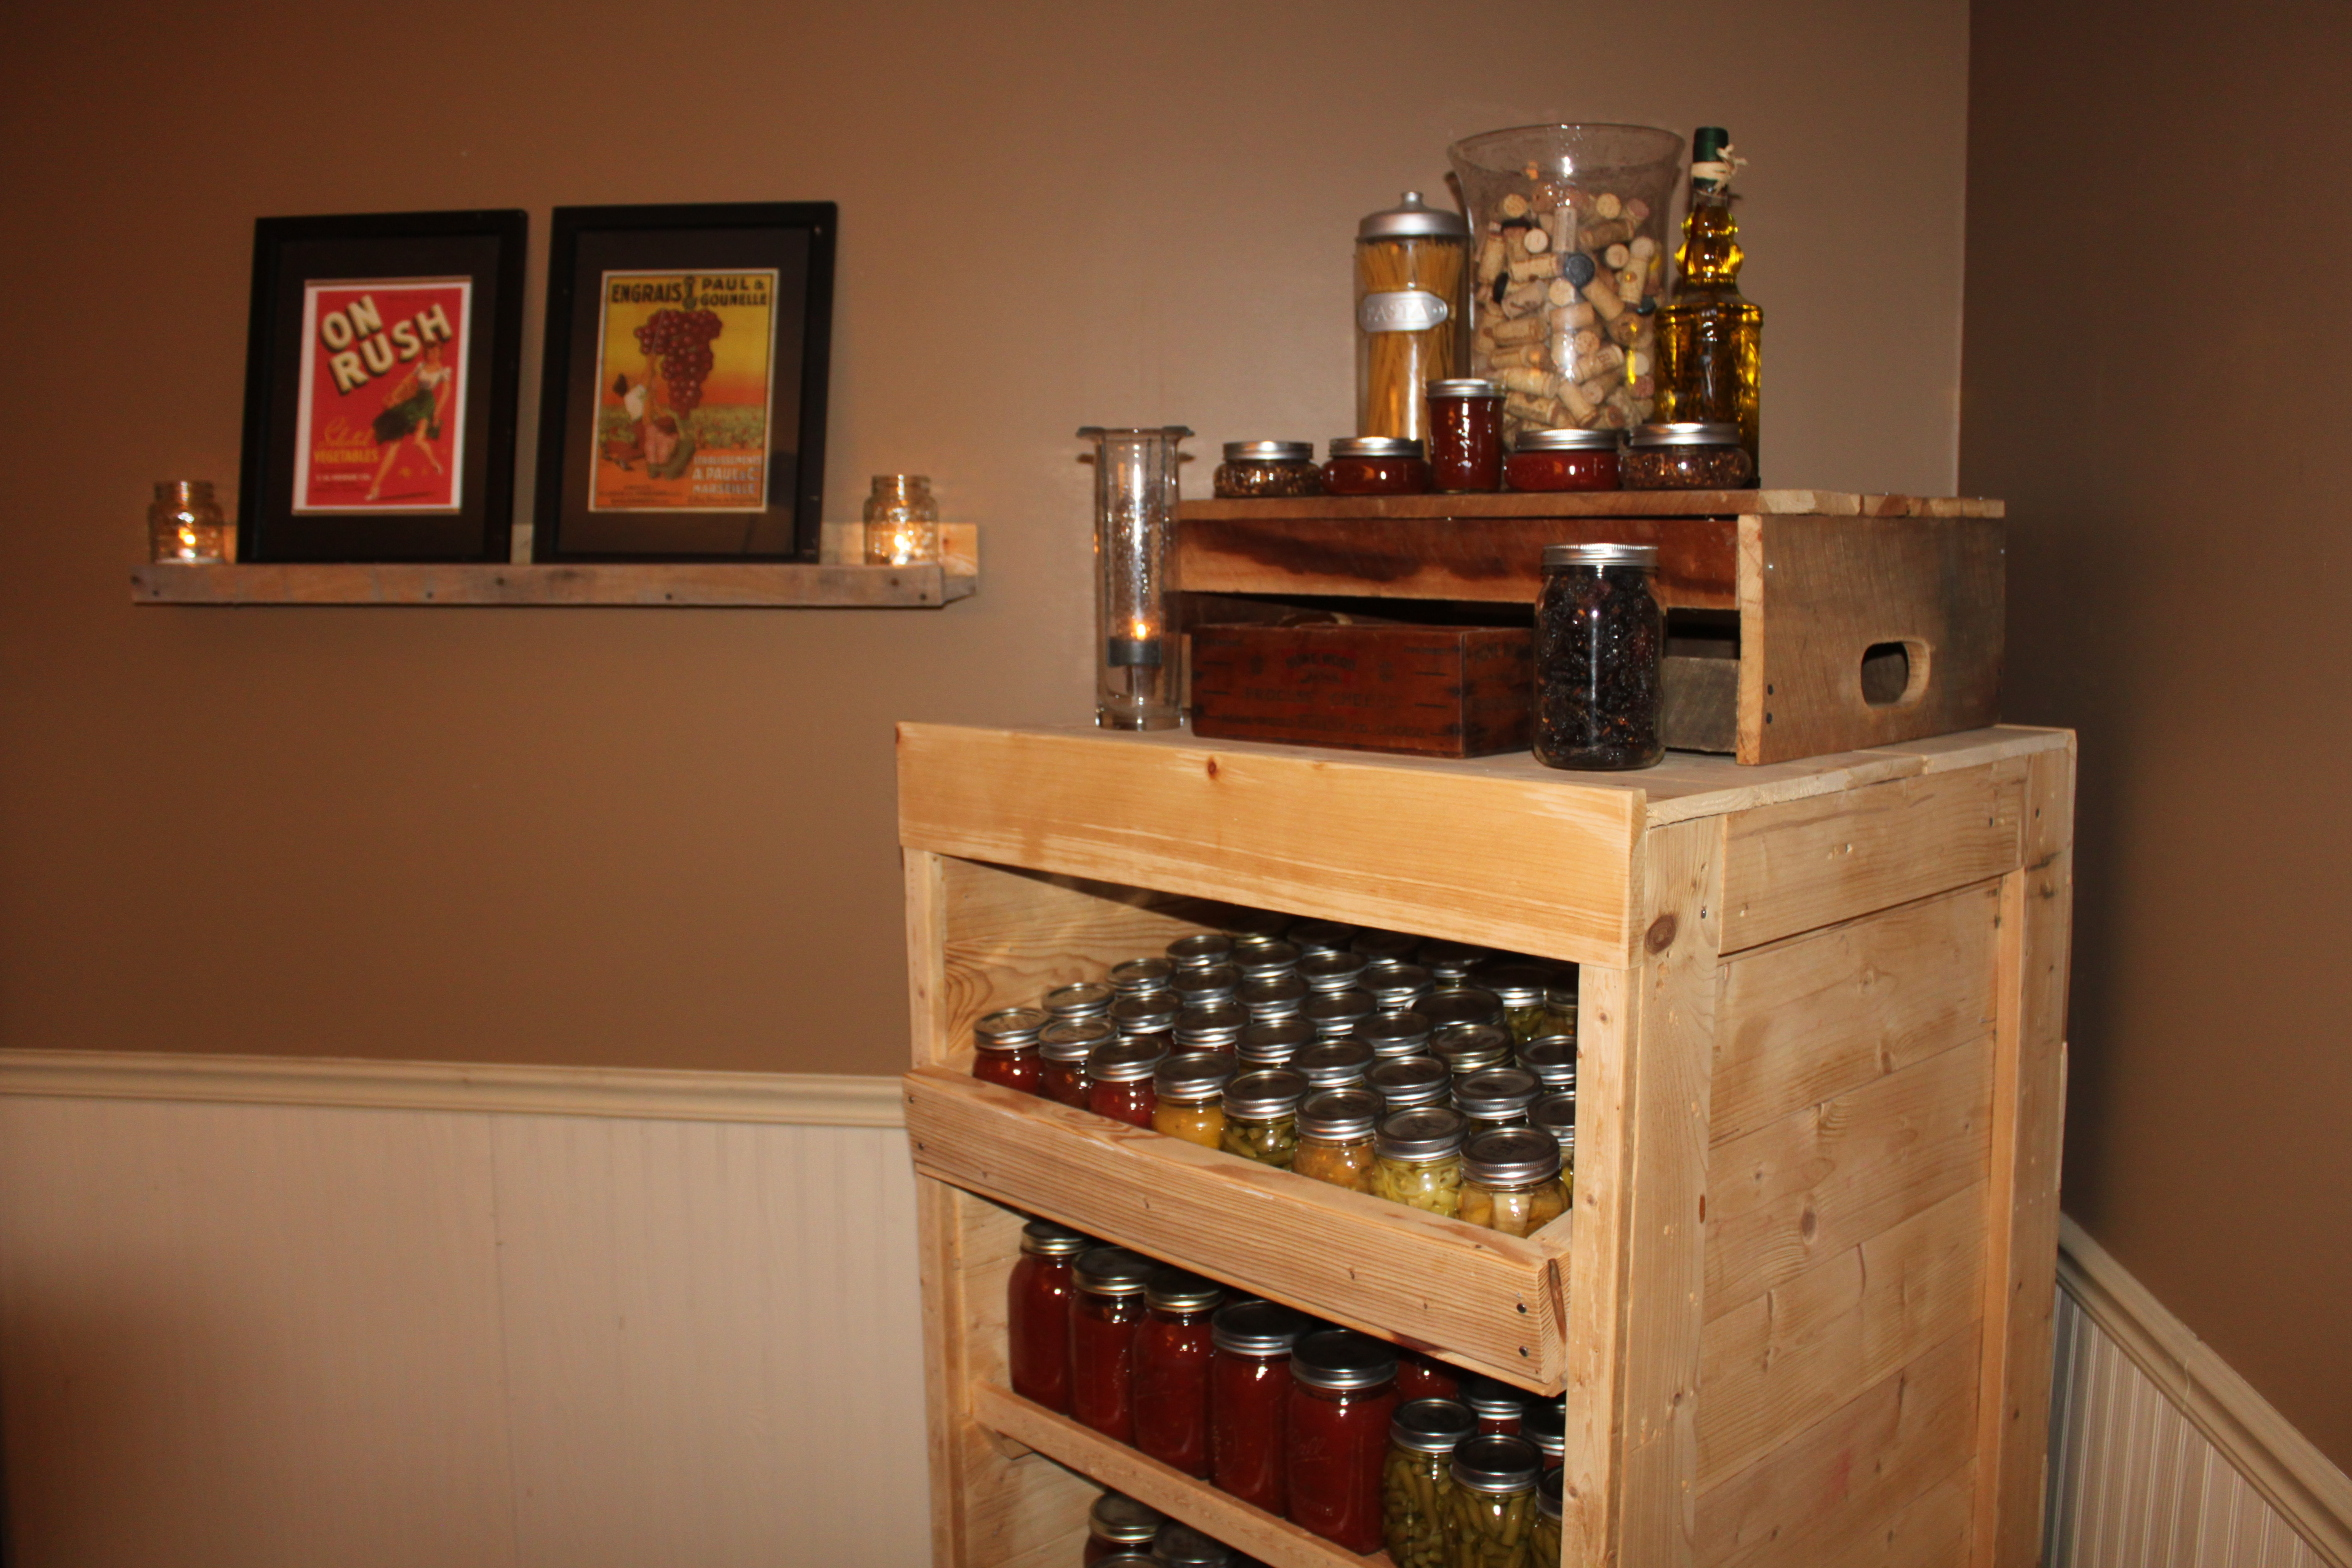 shipping pallet furniture ideas. VIEW IN GALLERY Canning Pantry Cupboard Built From Pallets Shipping Pallet Furniture Ideas